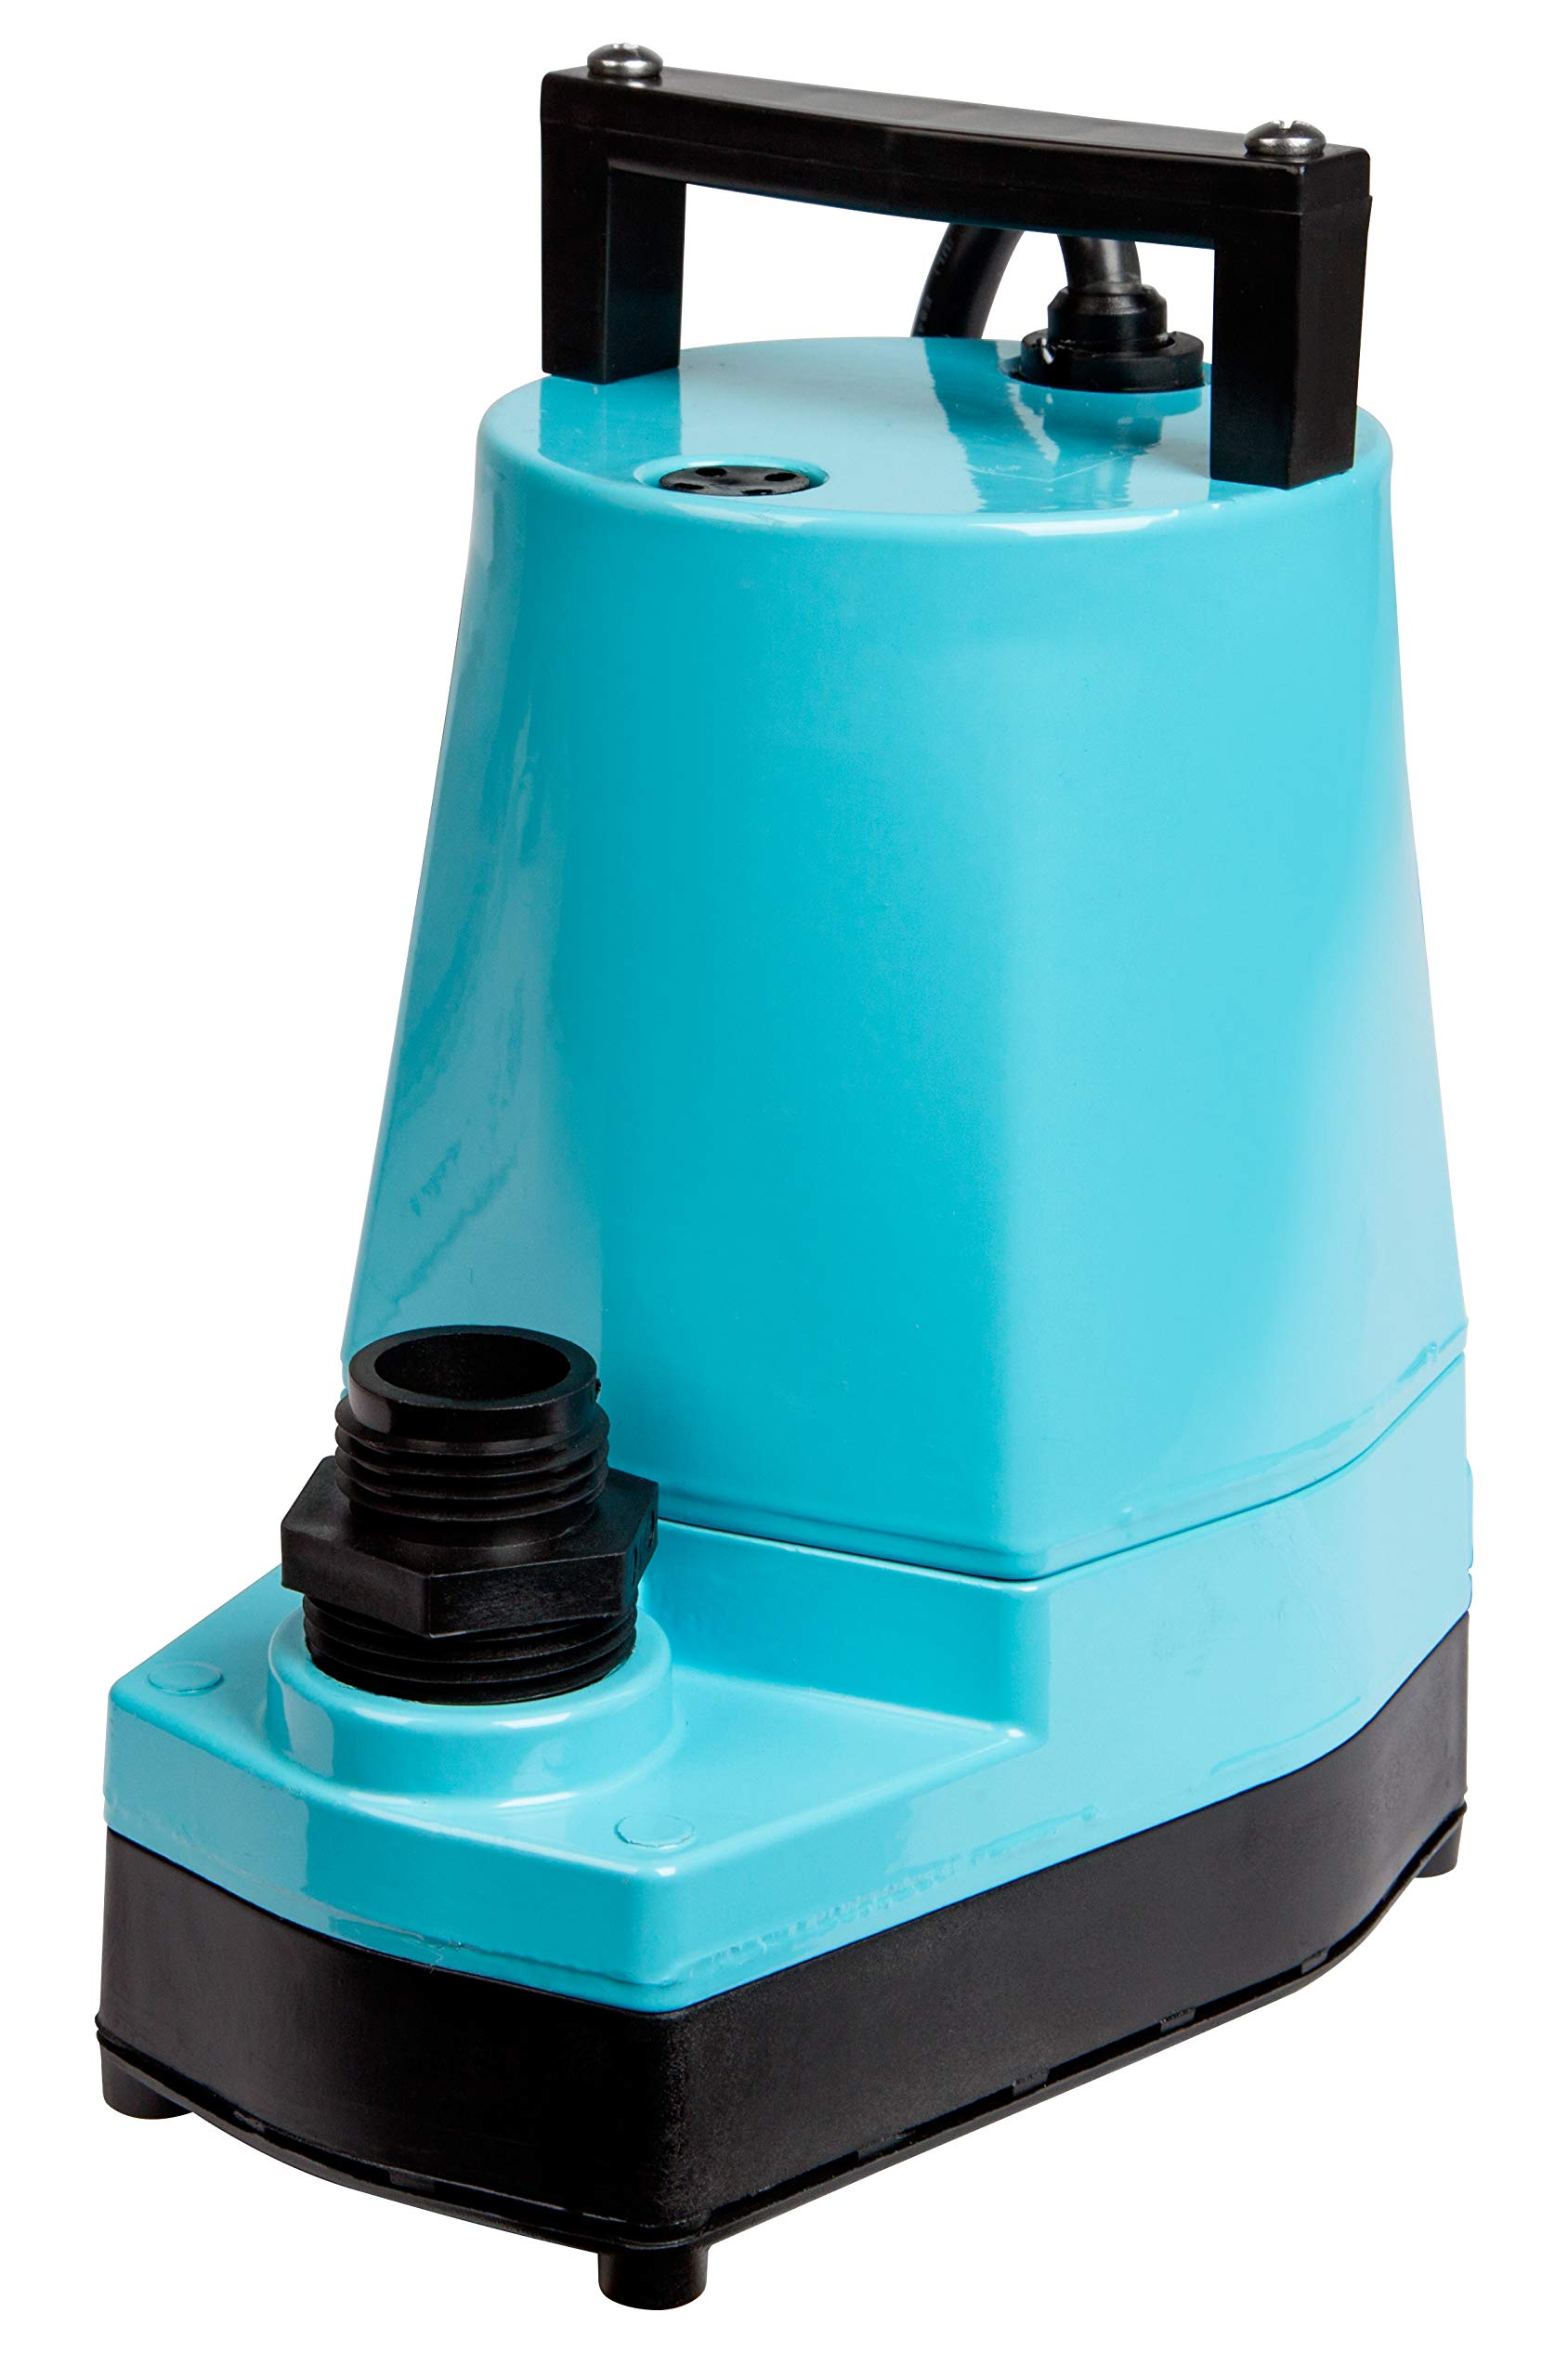 Little Giant 505005 1/6 HP Submersible Hydroponic Pump, 5-MSP, 115V, 1200 GPH by Little Giant